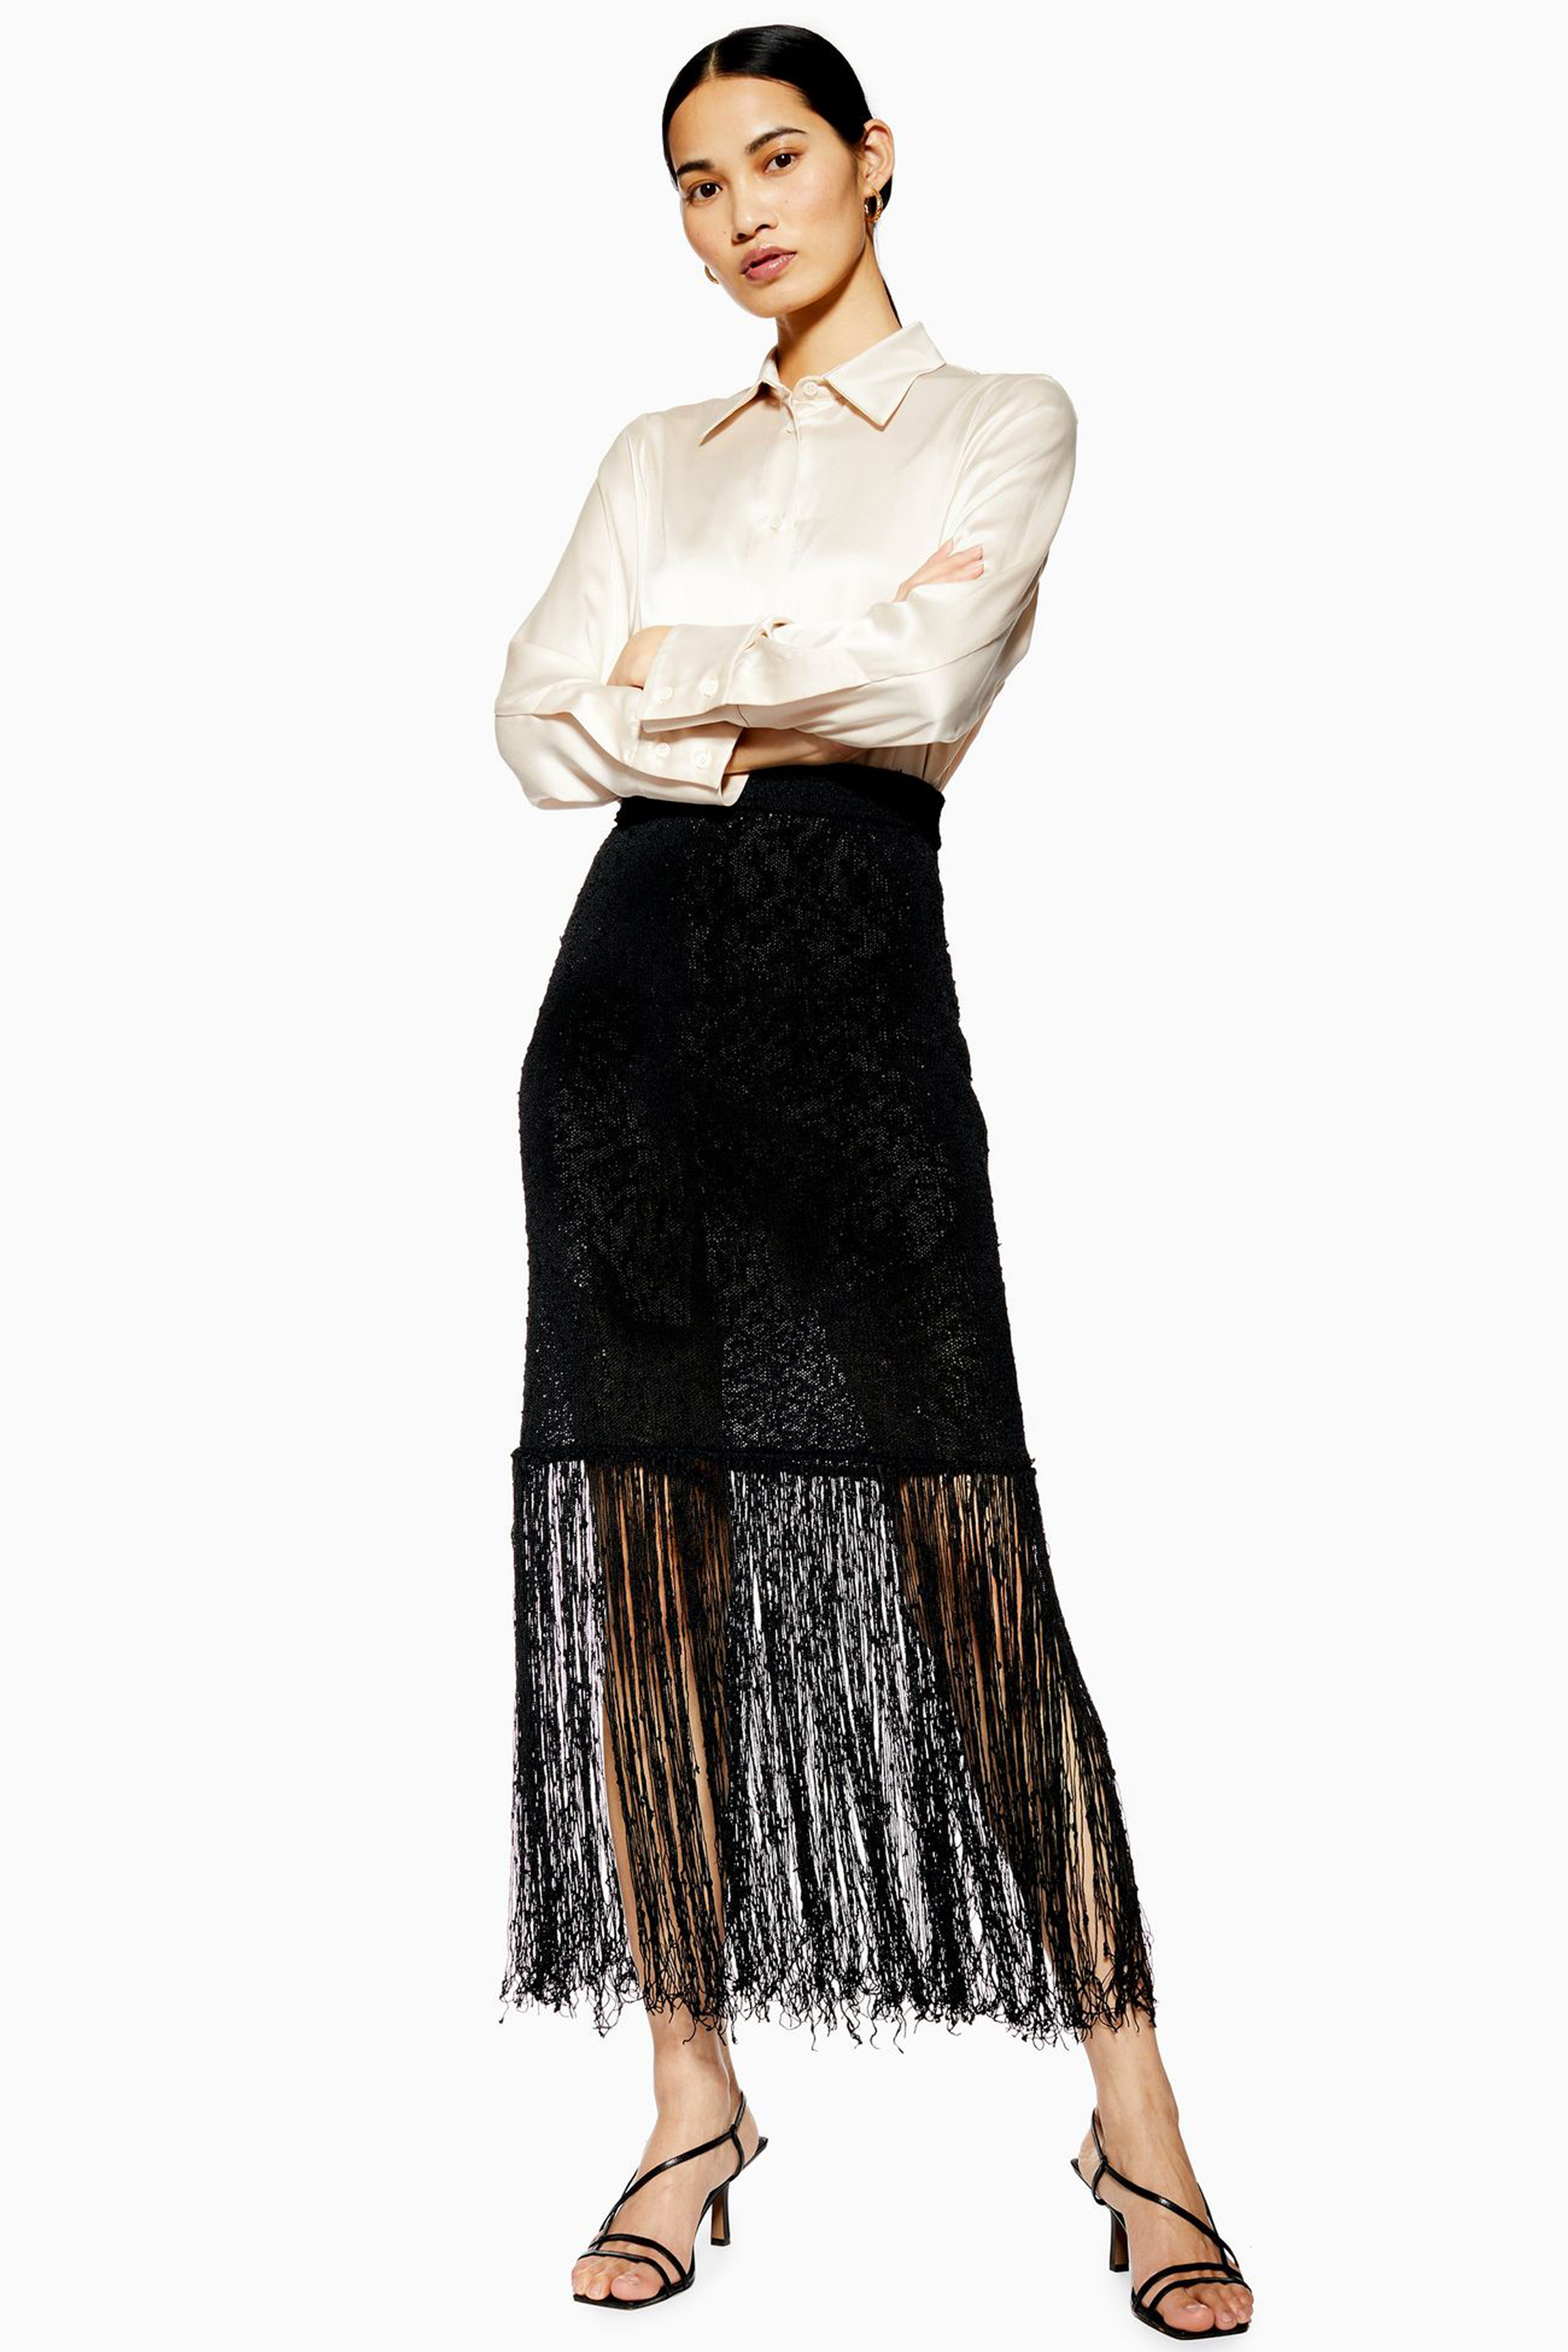 Topshop Boutique Side Split Silk Shirt; Boutique Fringe Knit Skirt